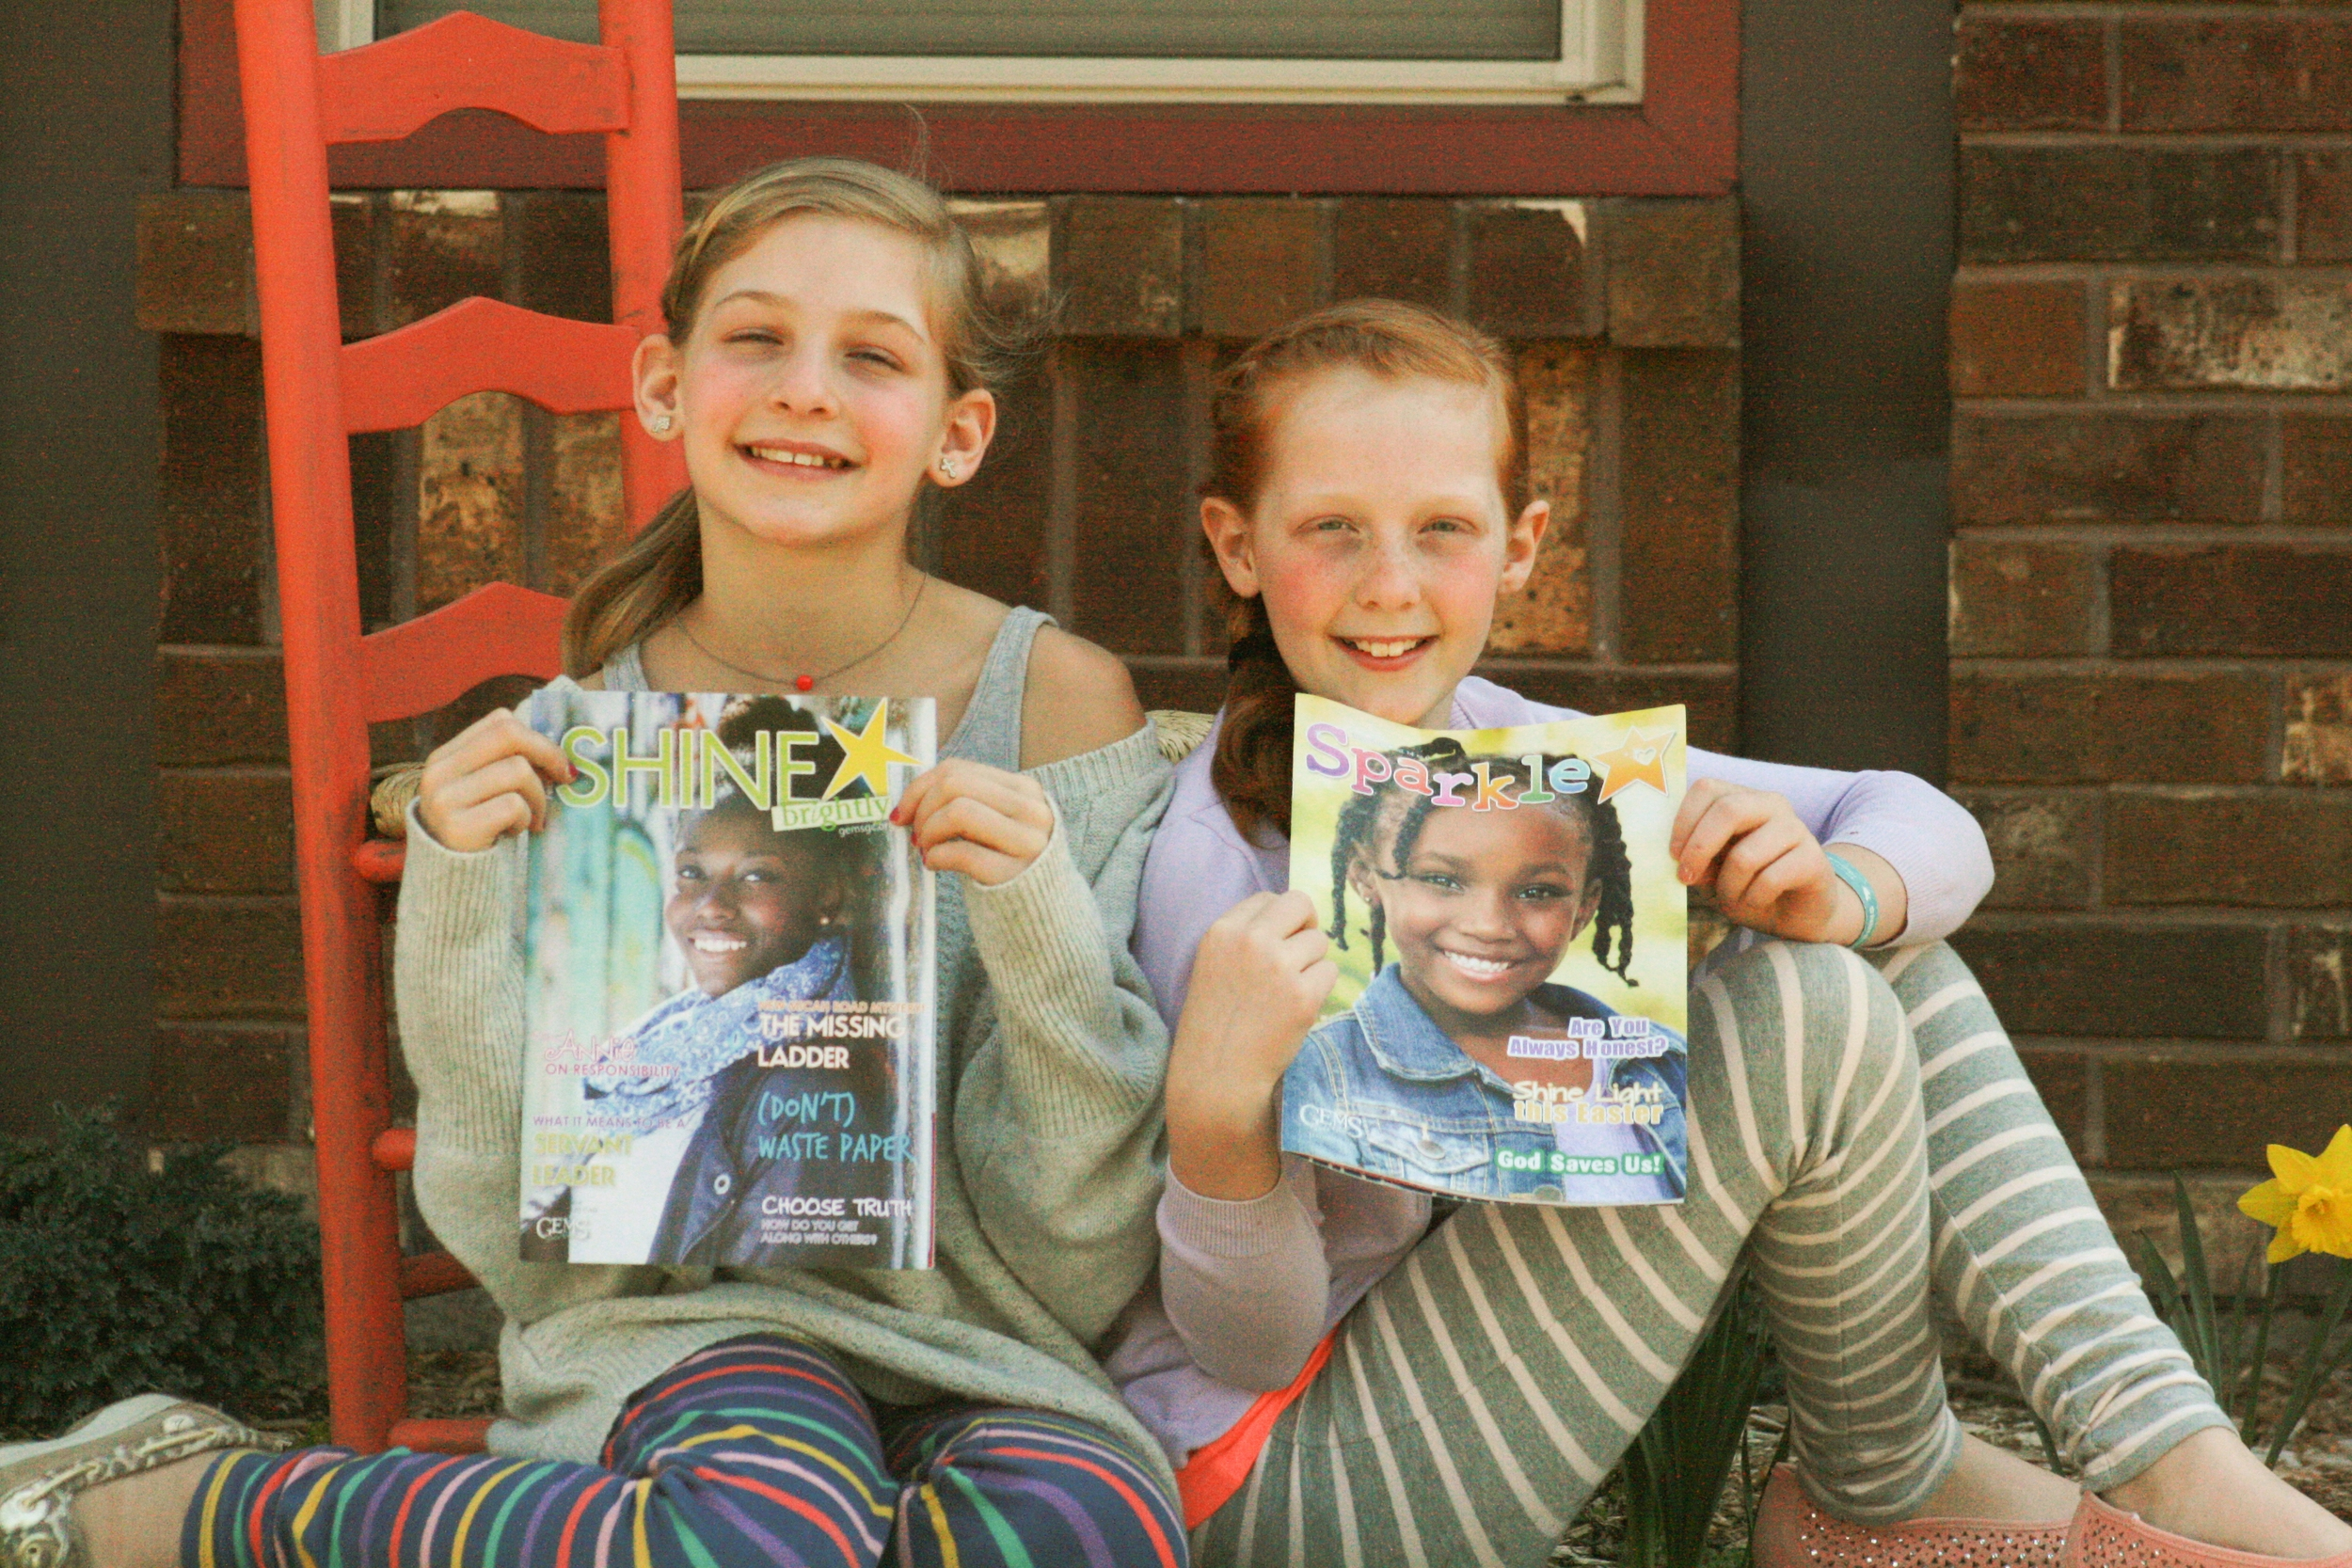 My lovely nieces Faith and Felicity, GEMS Girls Club attendees as well as  Sparkle  and  SHINE   brightly  readers.  Sparkle  is written for girls ages 6-8, and  SHINE   brightly  is written for girls ages 9-14. These magazines are used as curriculum for GEMS clubs, but are also available by subscription. Read to learn more and also find out how you can win a free yearlong subscription to one of these two magazines! {Photos by Amber VanderVennen.}